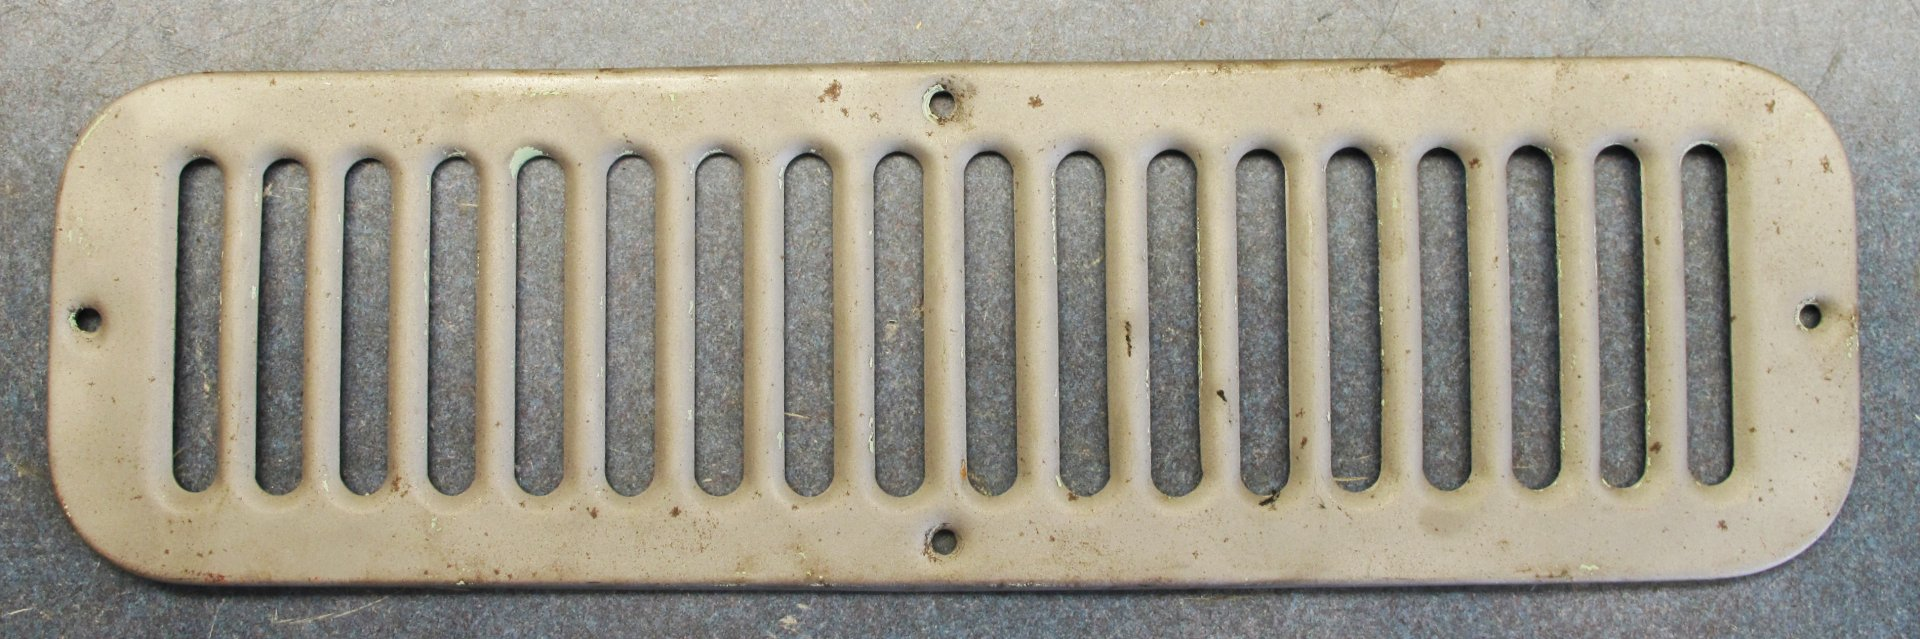 Cowl Vent Grille.jpg